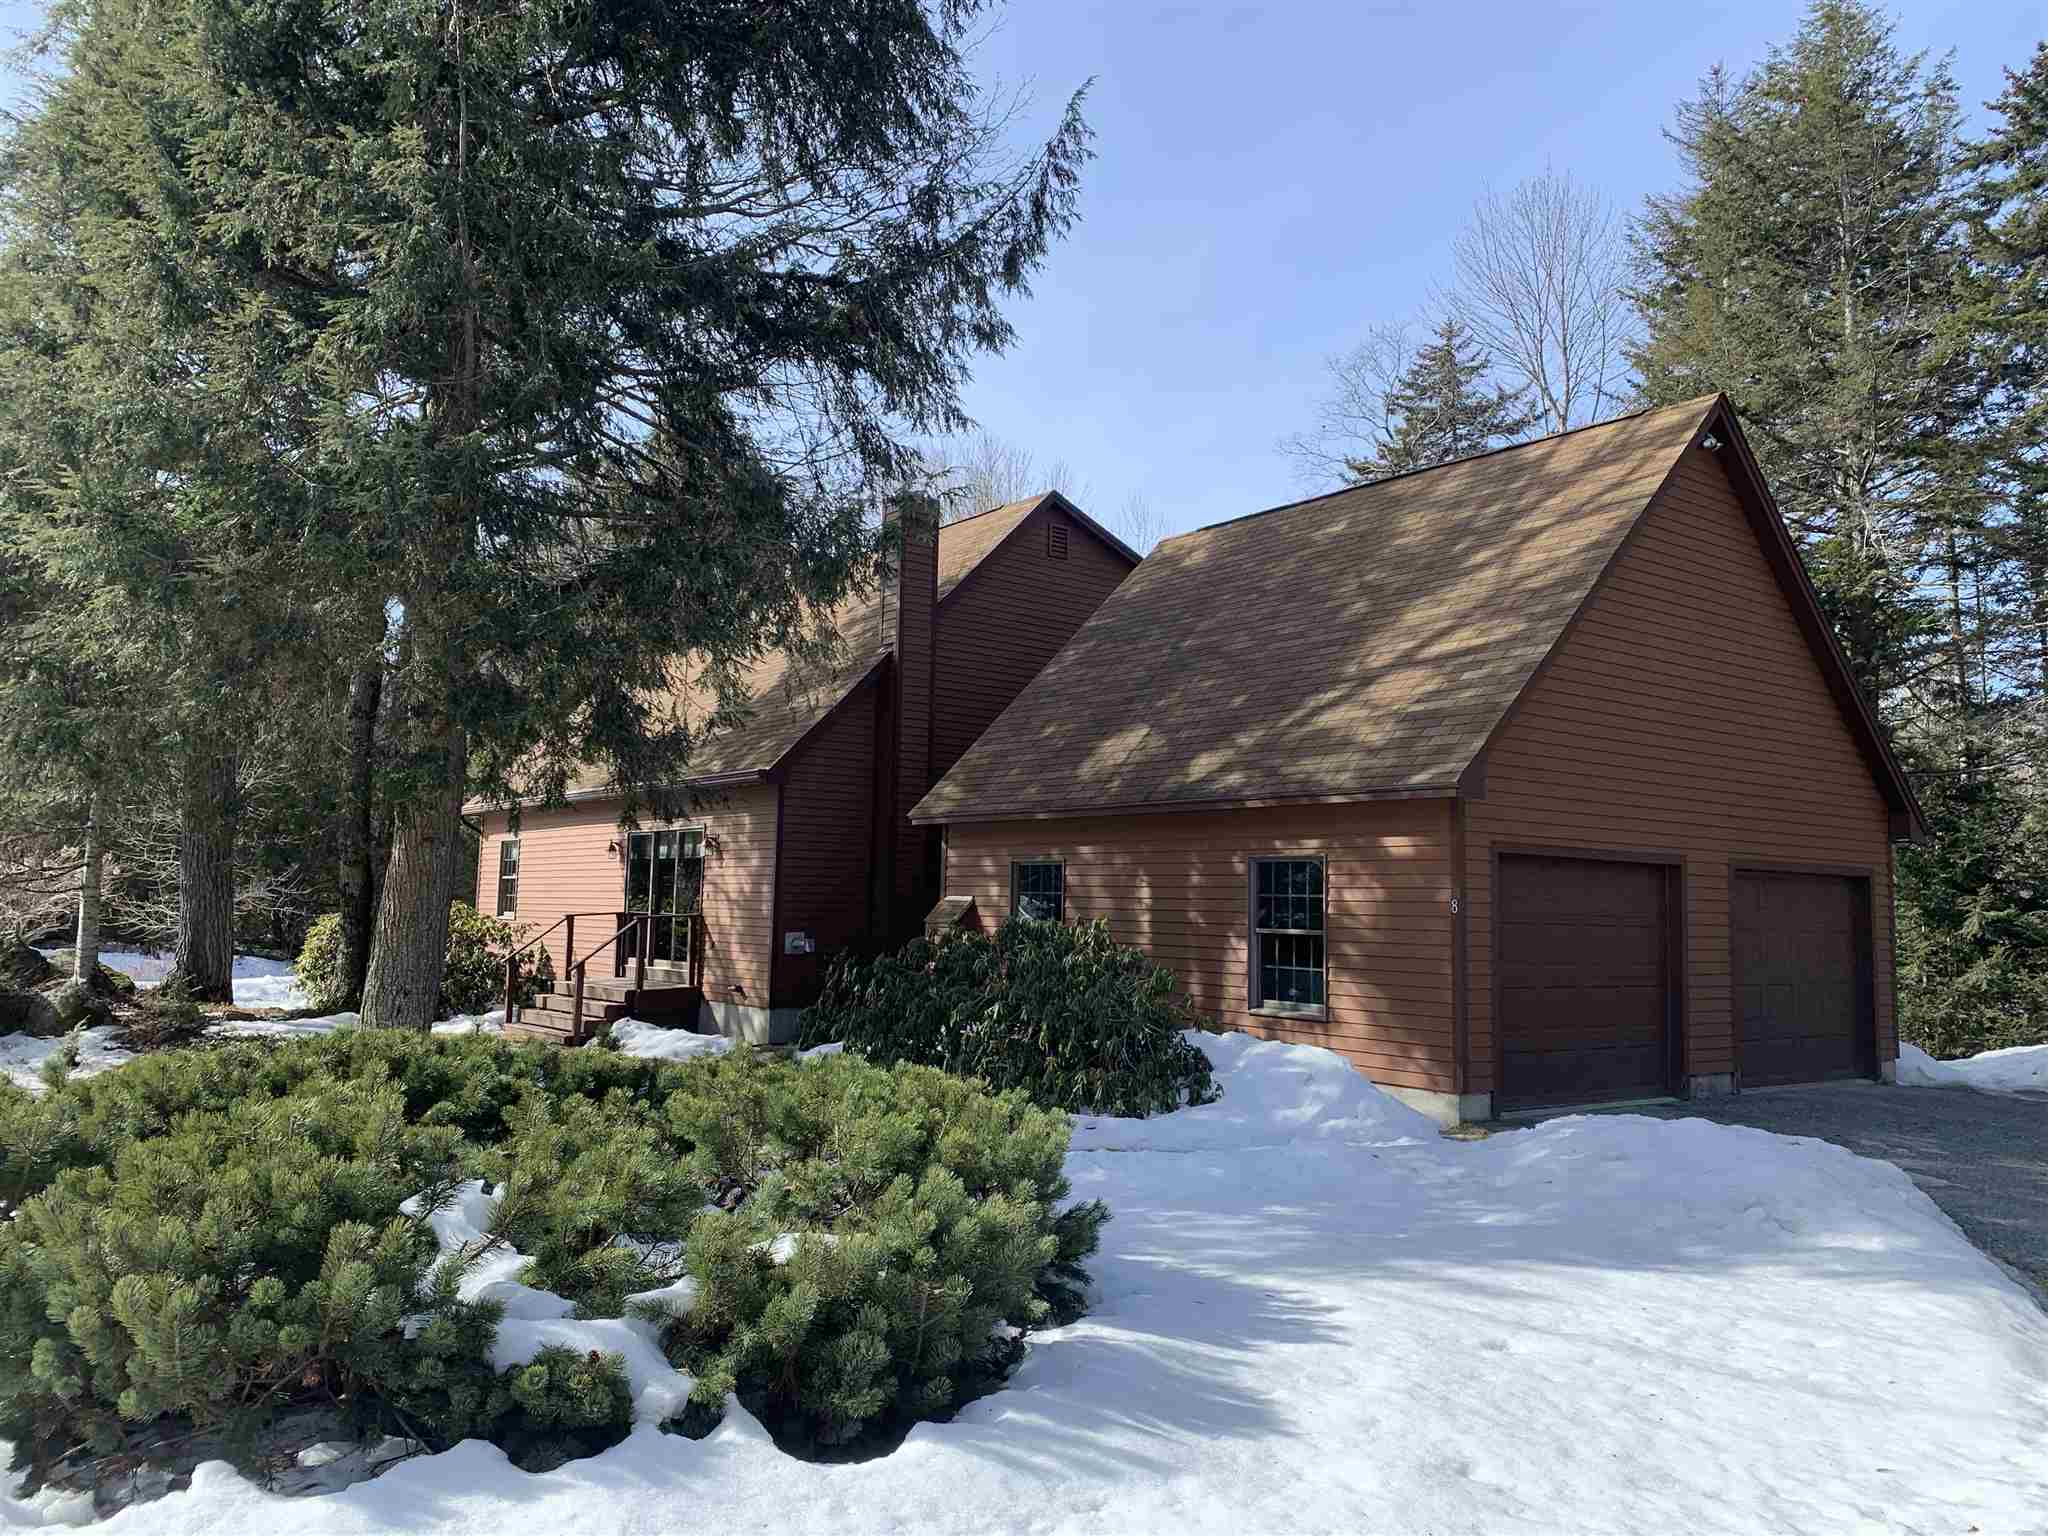 MLS 4796429: 8 Mill Pond Lane, Grantham NH